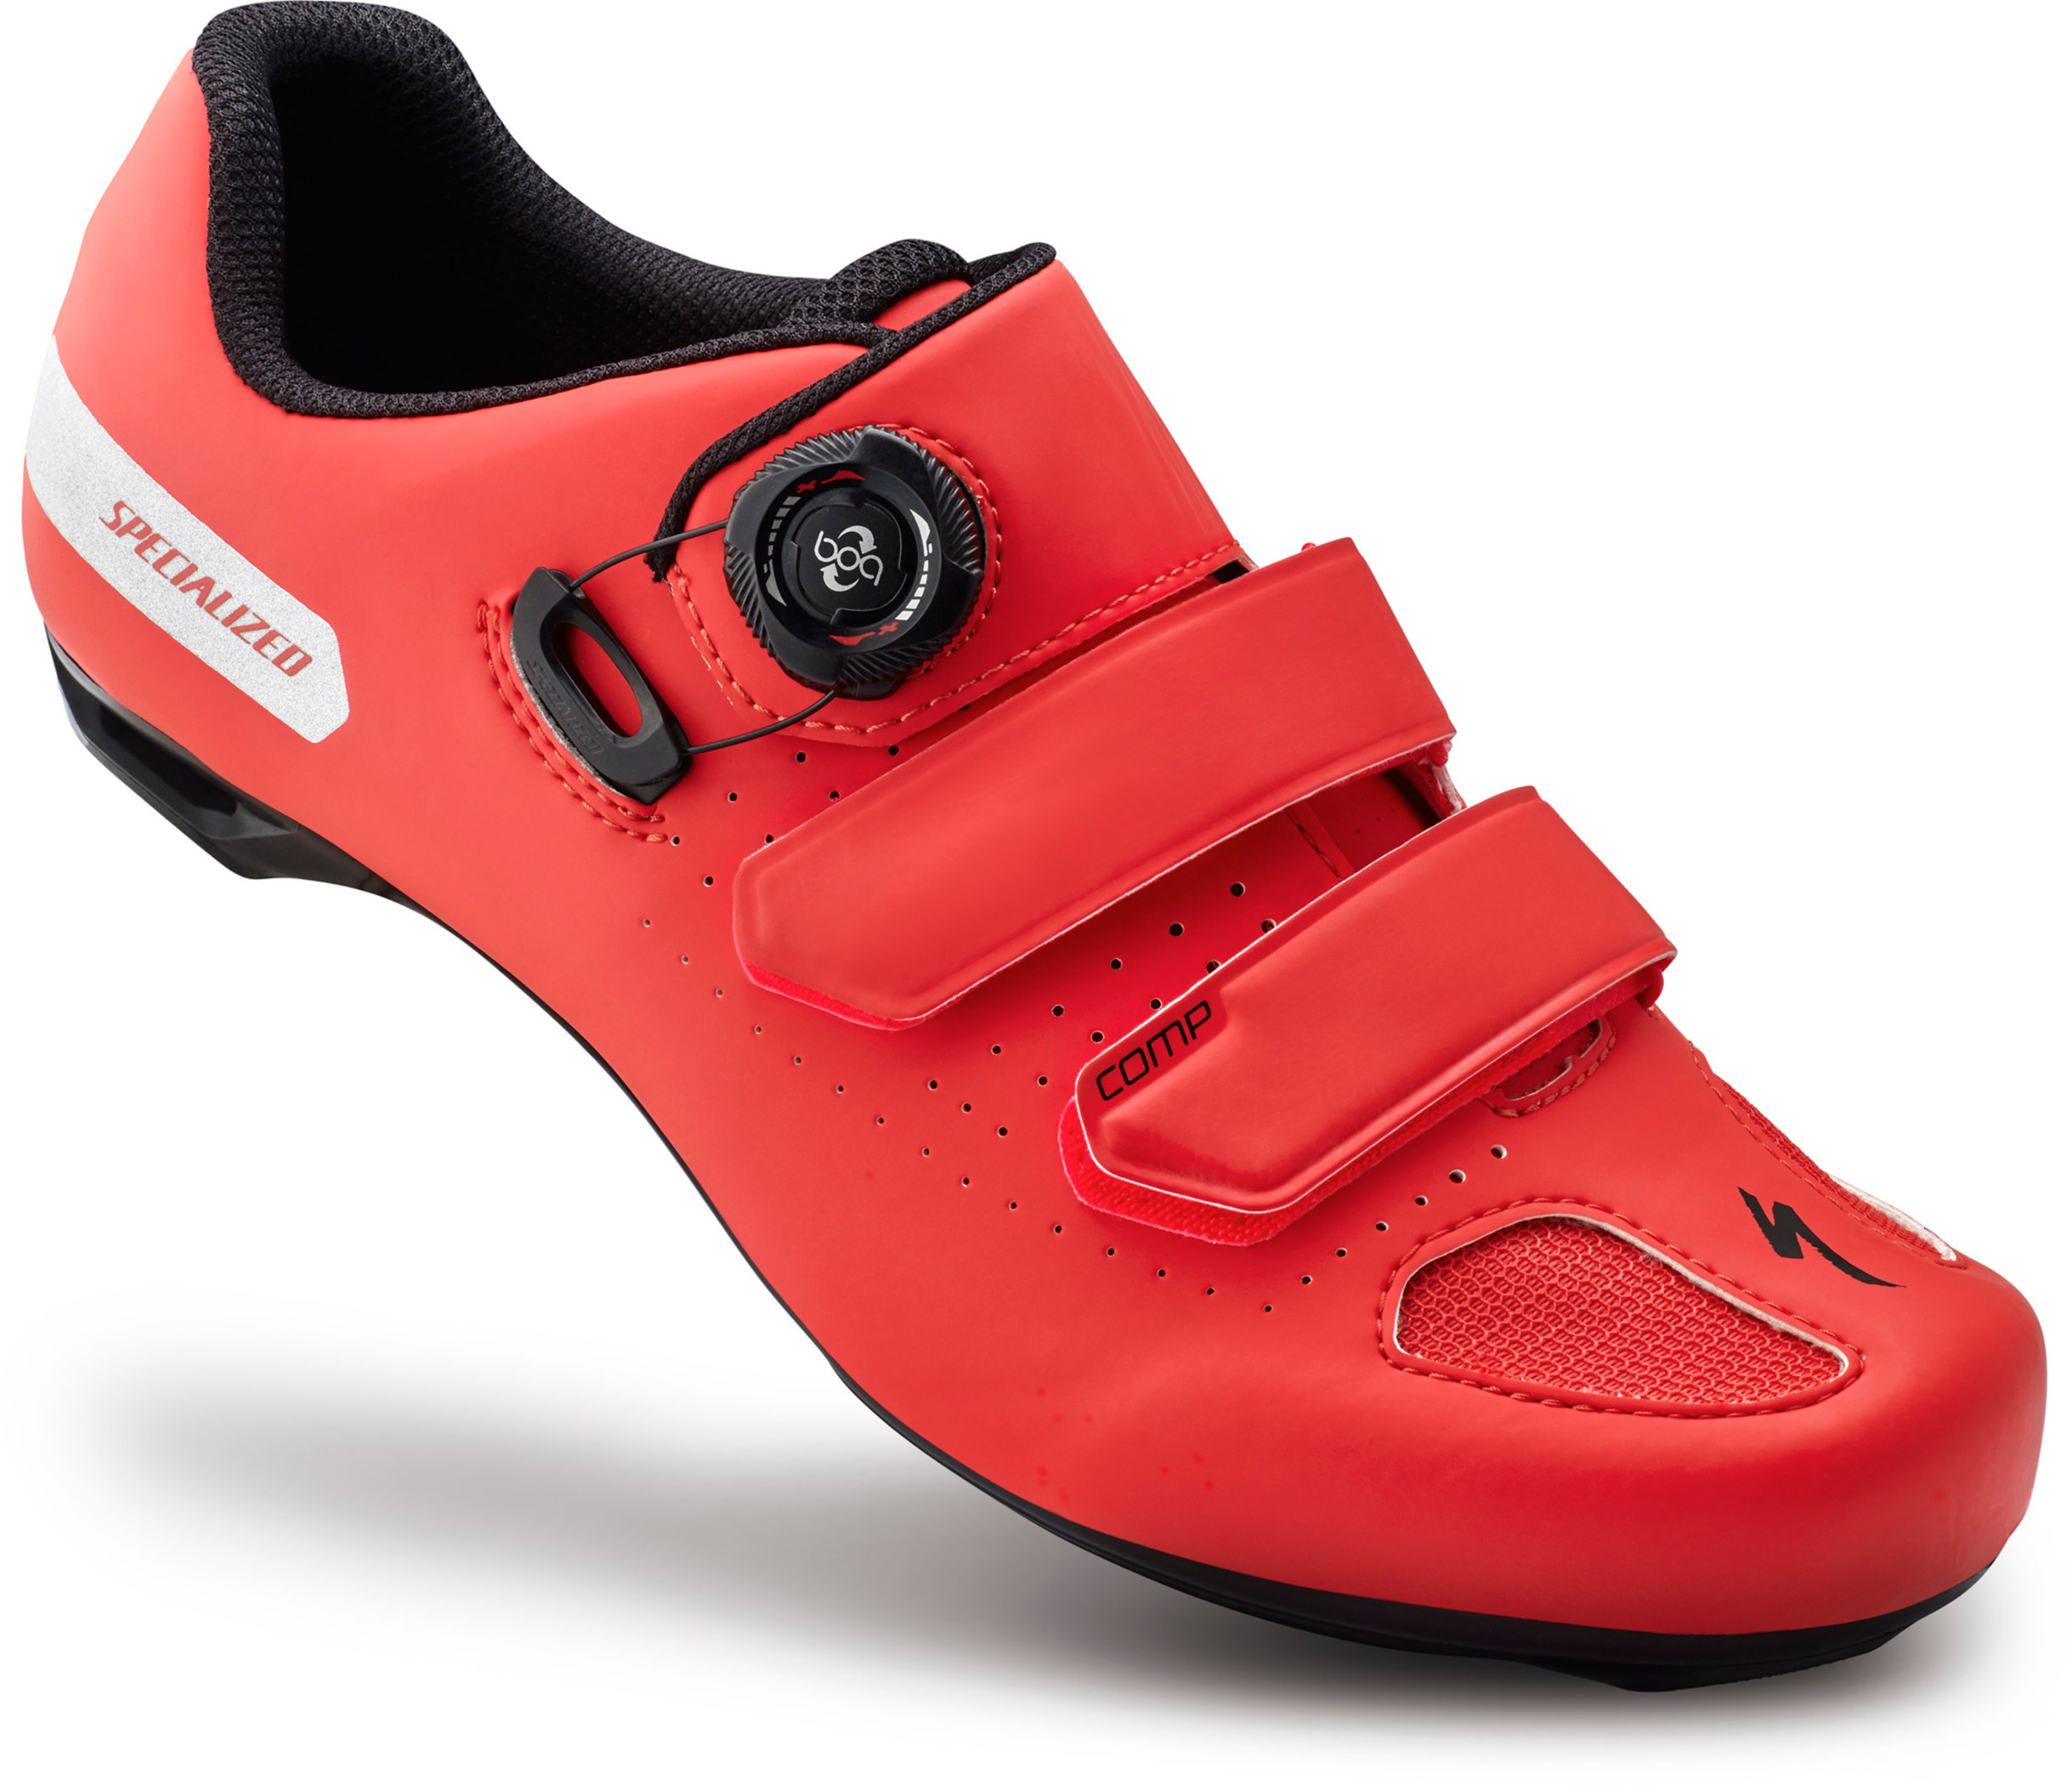 SPECIALIZED COMP RD SHOE RKTRED 41.5/8.5 - Bikedreams & Dustbikes